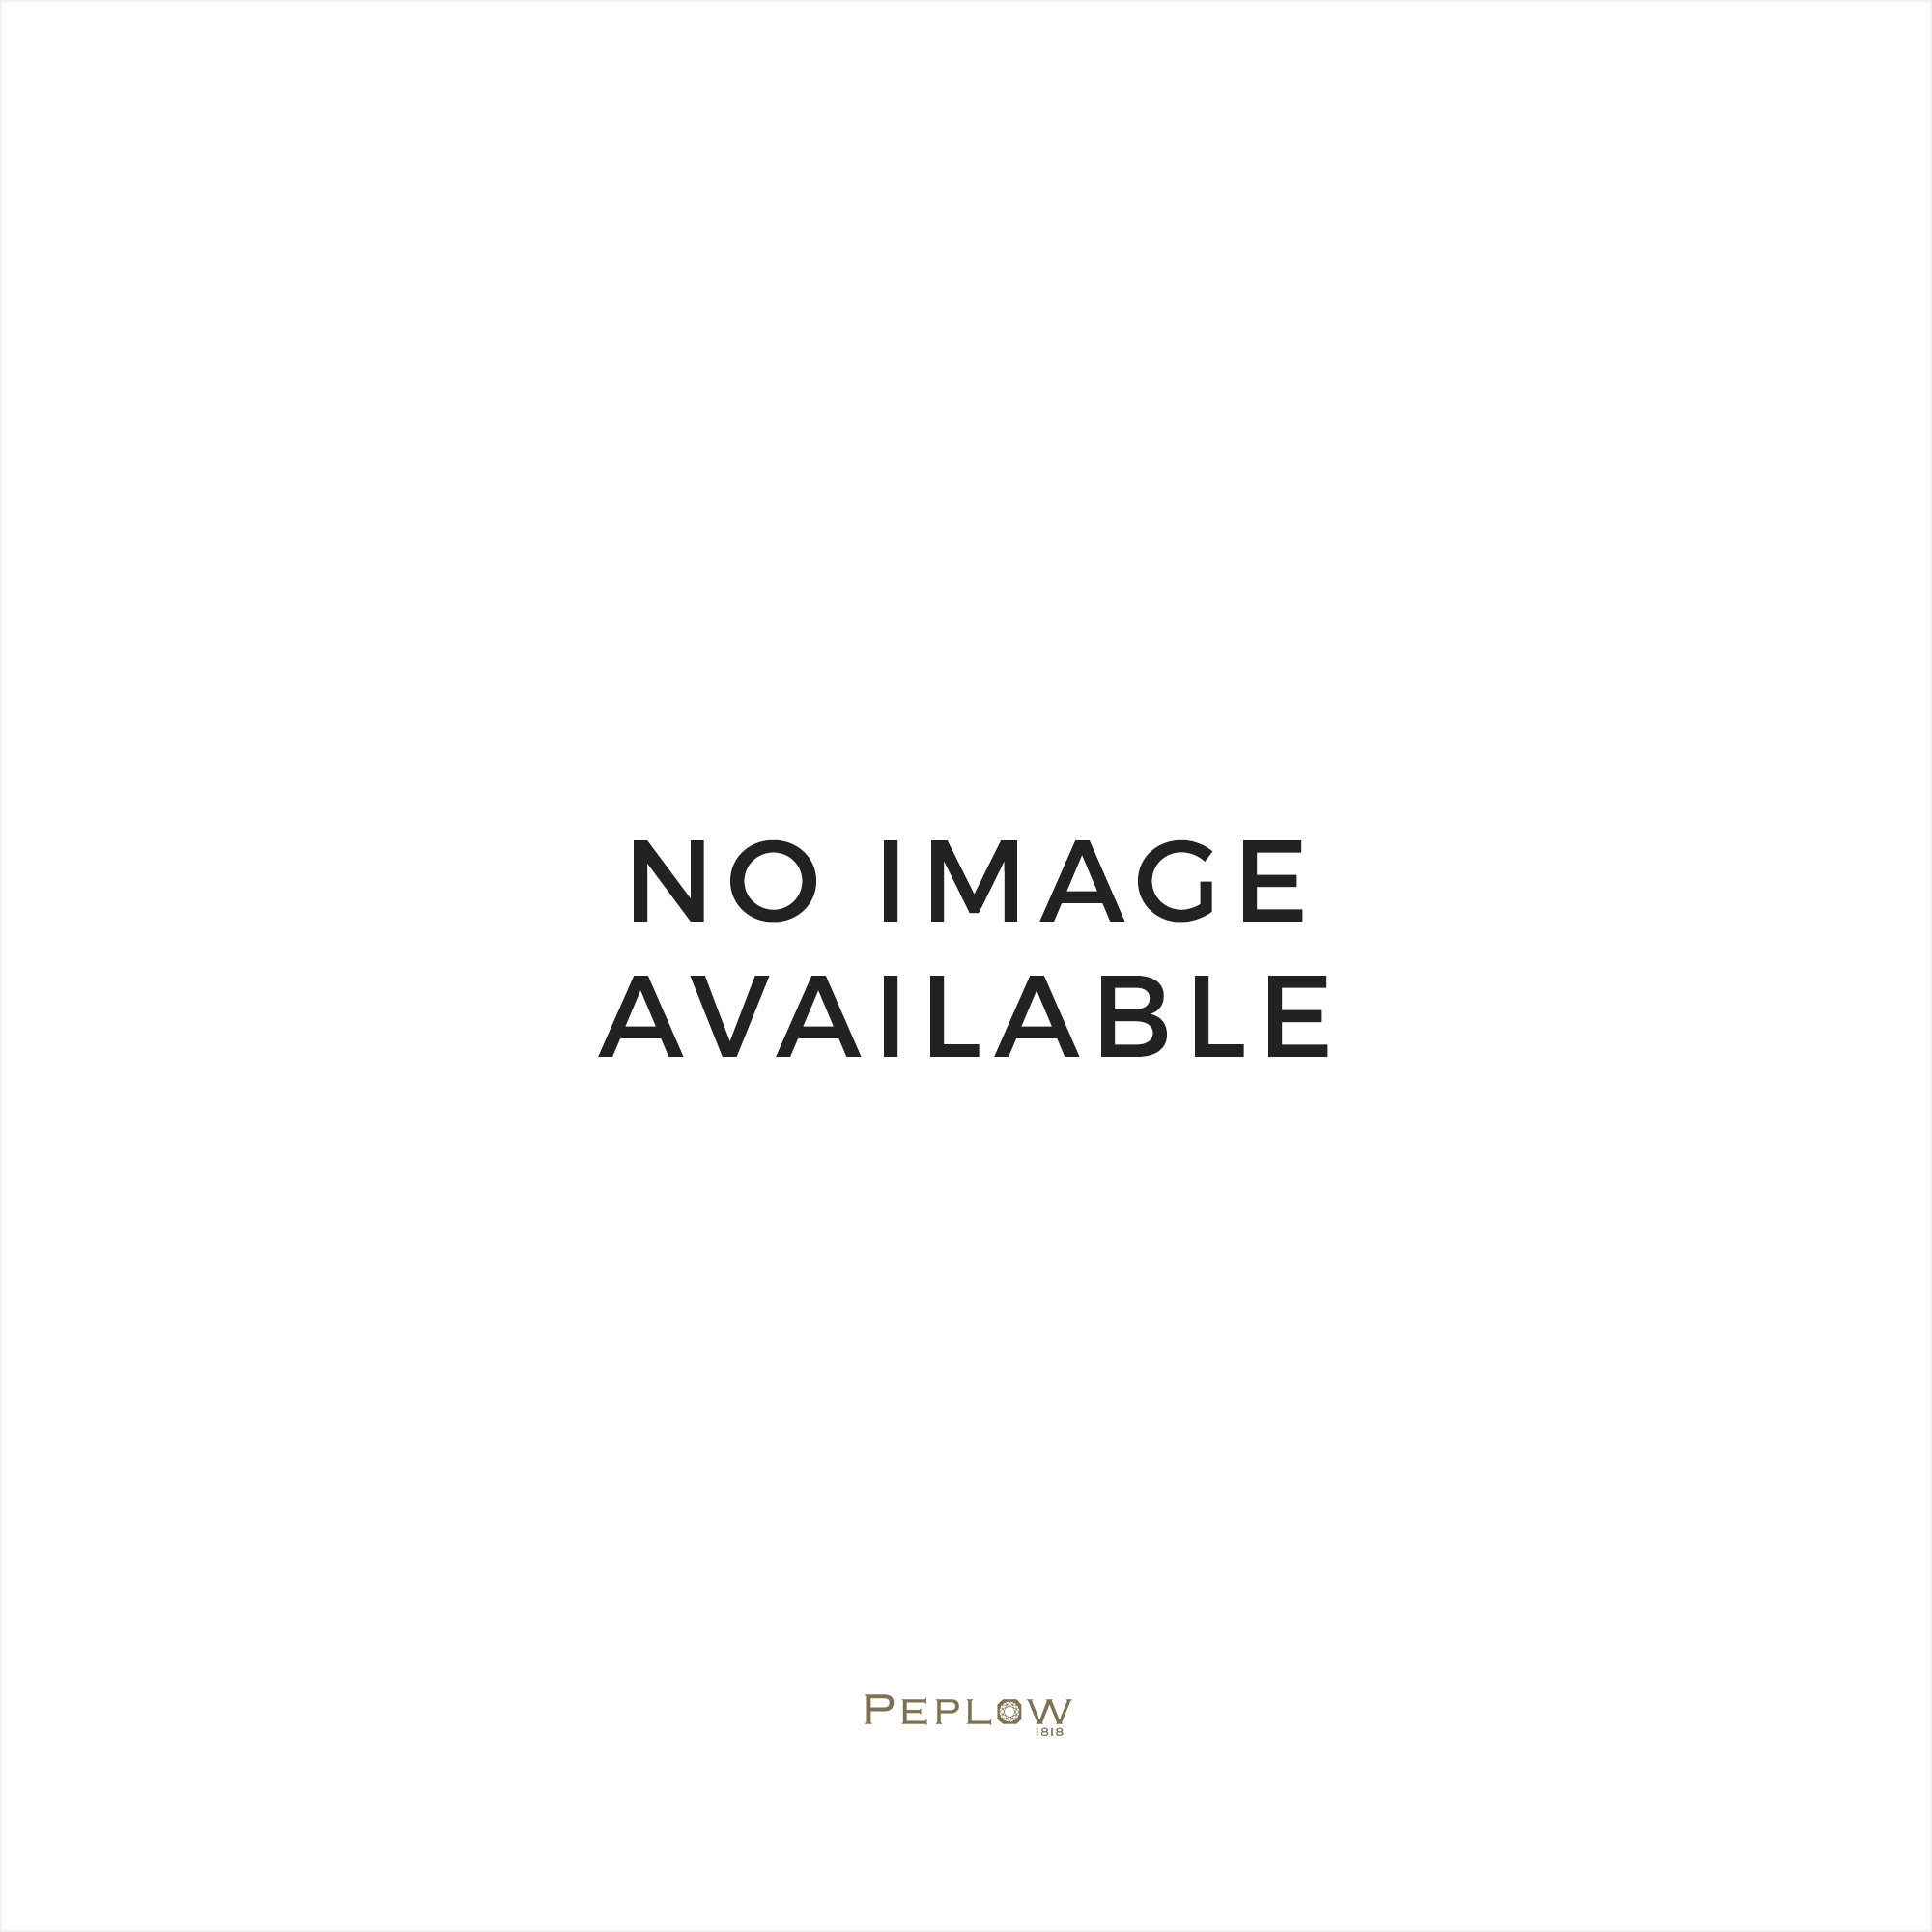 Seiko Watches Seiko Mens Automatic Diver Prospex Watch